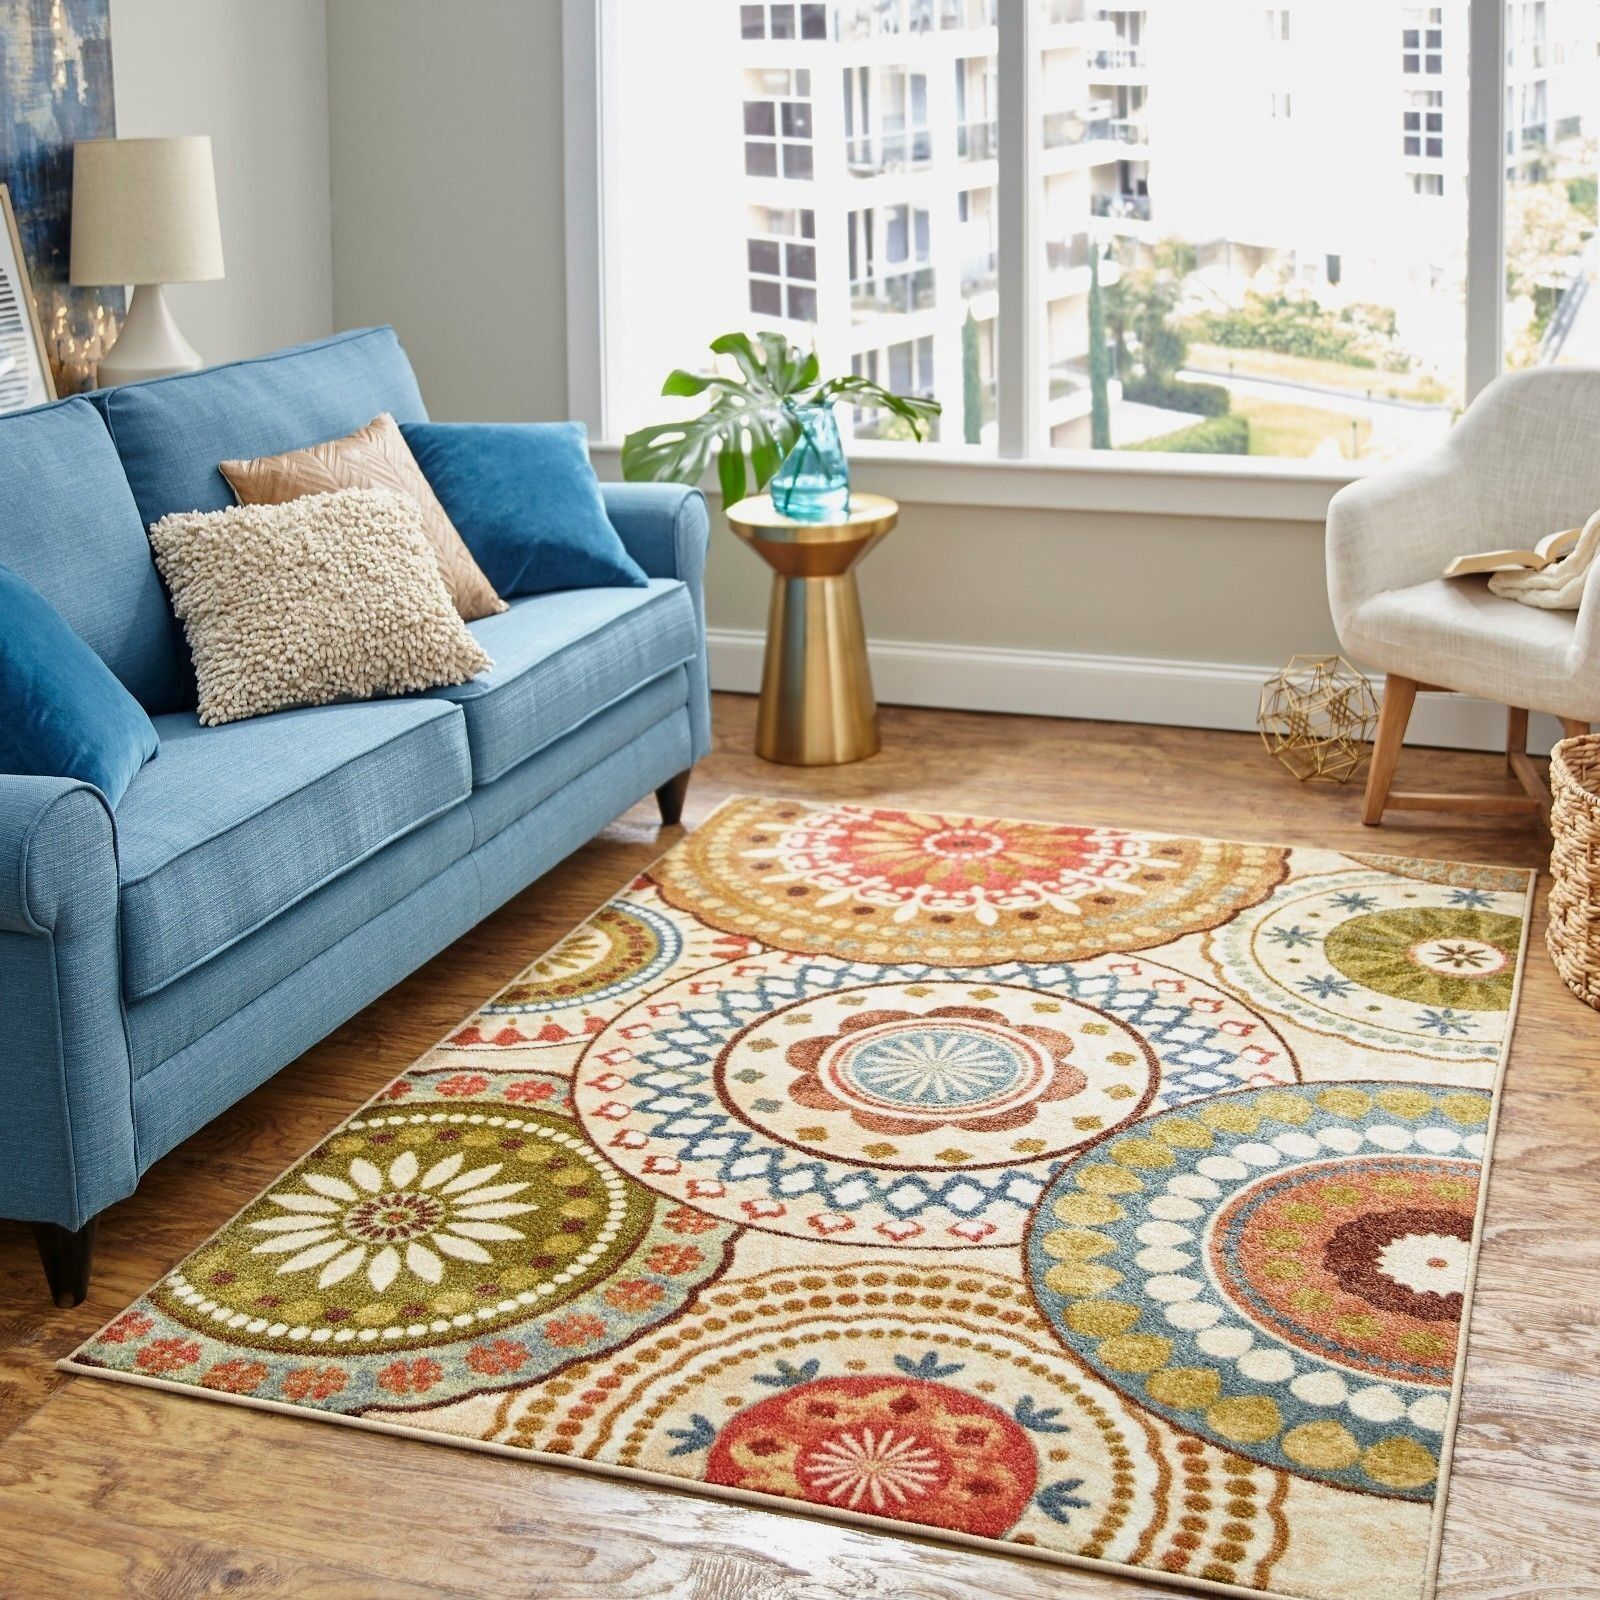 Details About Rugs Area Rugs Carpets 8x10 Rug Floor Big Modern Cool Large Living Room New Rugs